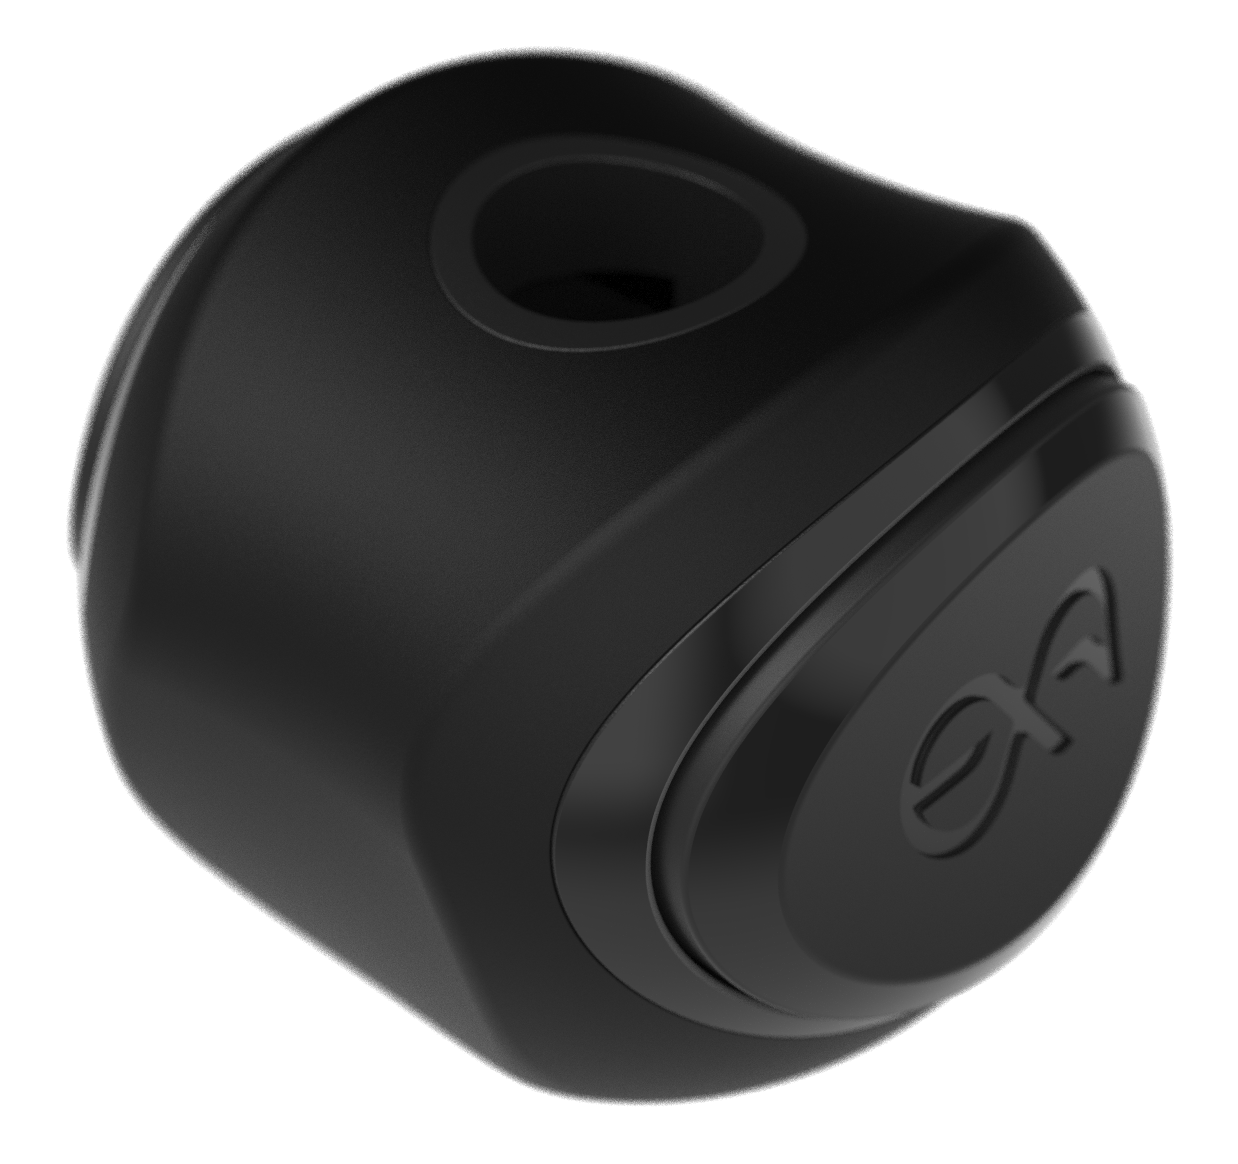 Perspective view of a cymlok cymbal nut for drums.